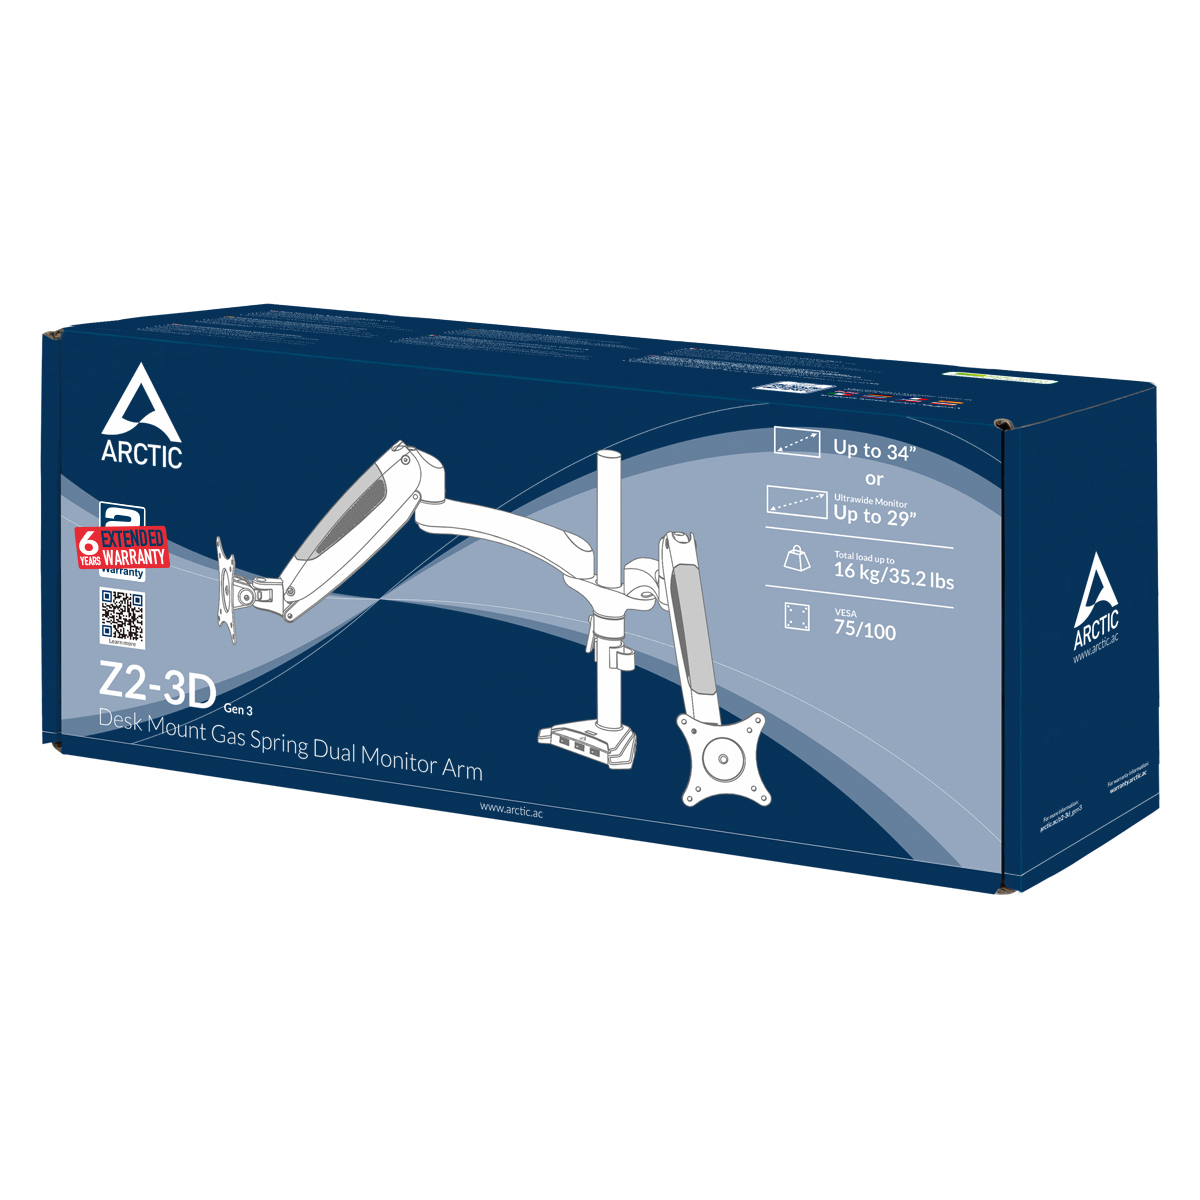 Desk Mount Gas Spring Dual Monitor Arm ARCTIC Z2-3D (Gen 3) Packaging Front View